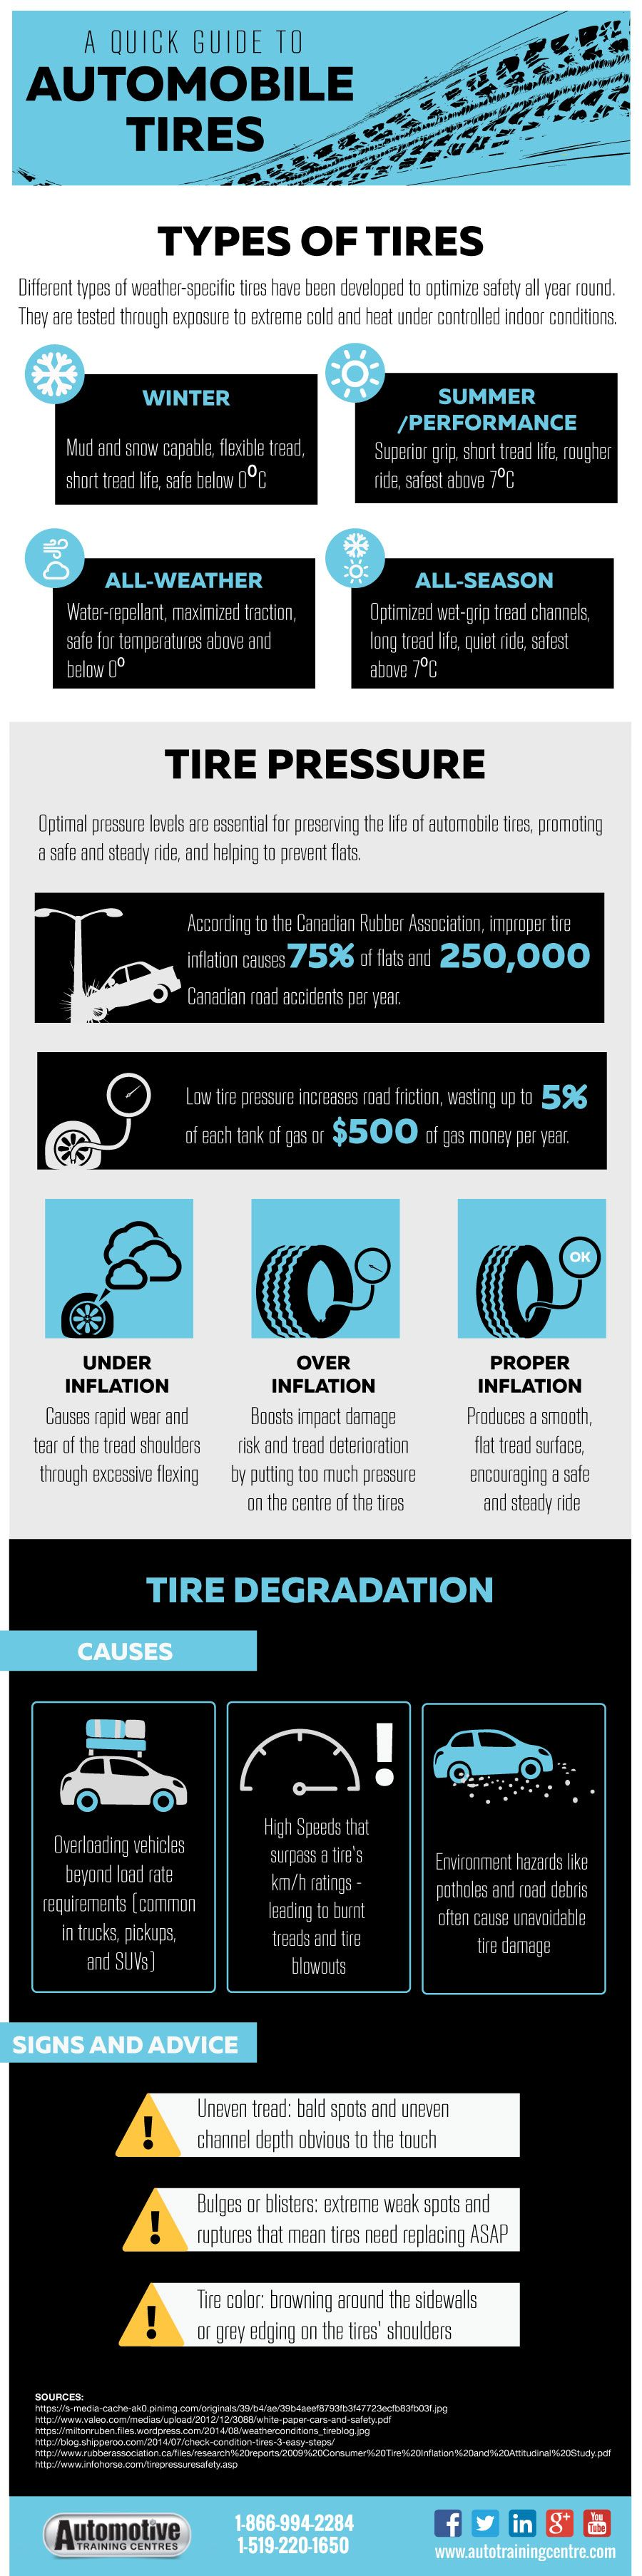 Infographic quickguide to automobile tires car care